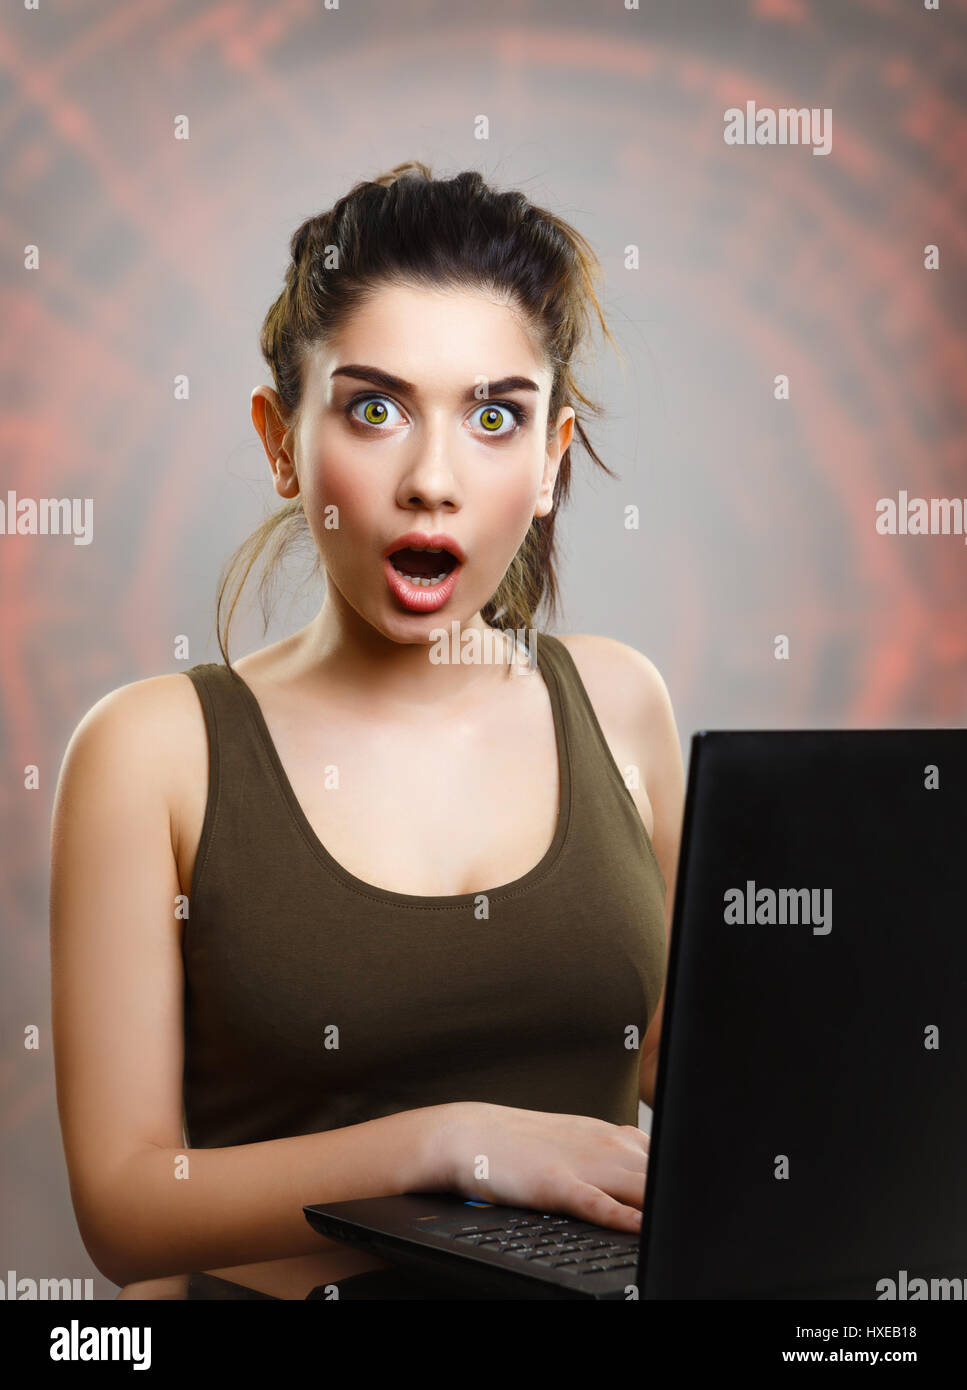 Young woman amazed and shocked by internet news search - Stock Image